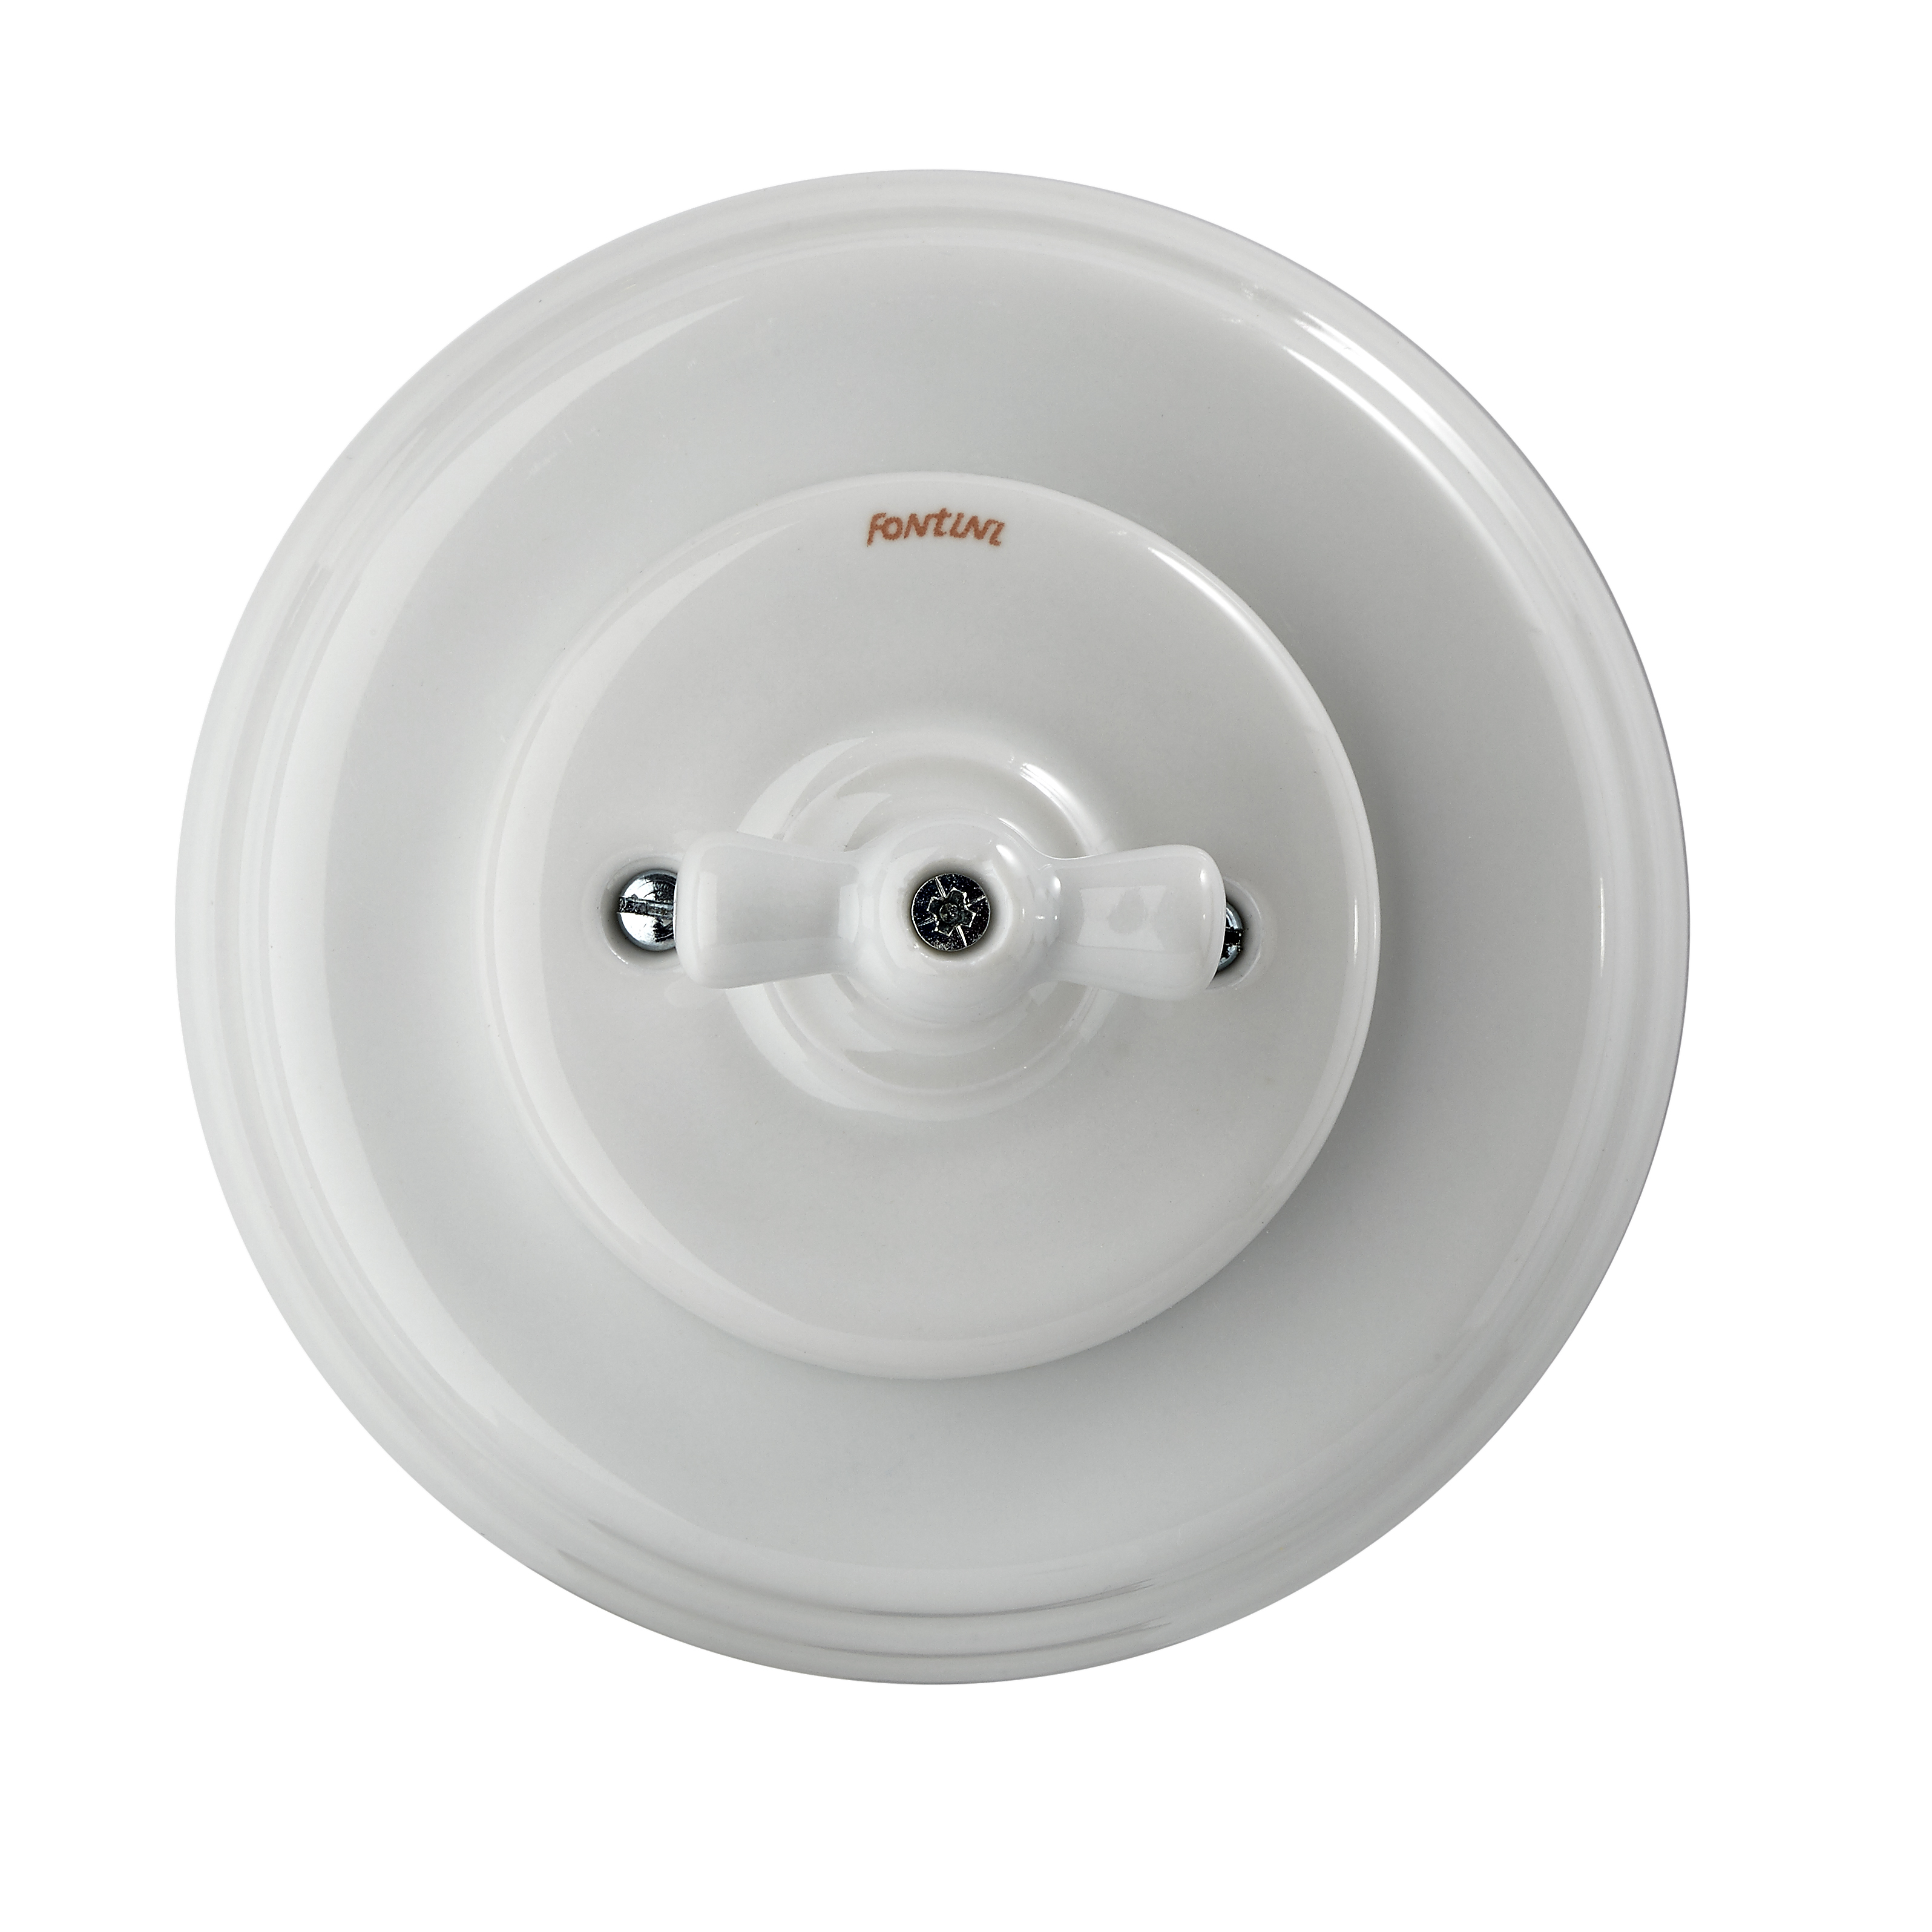 Fontini Garby Colonial White porcelain